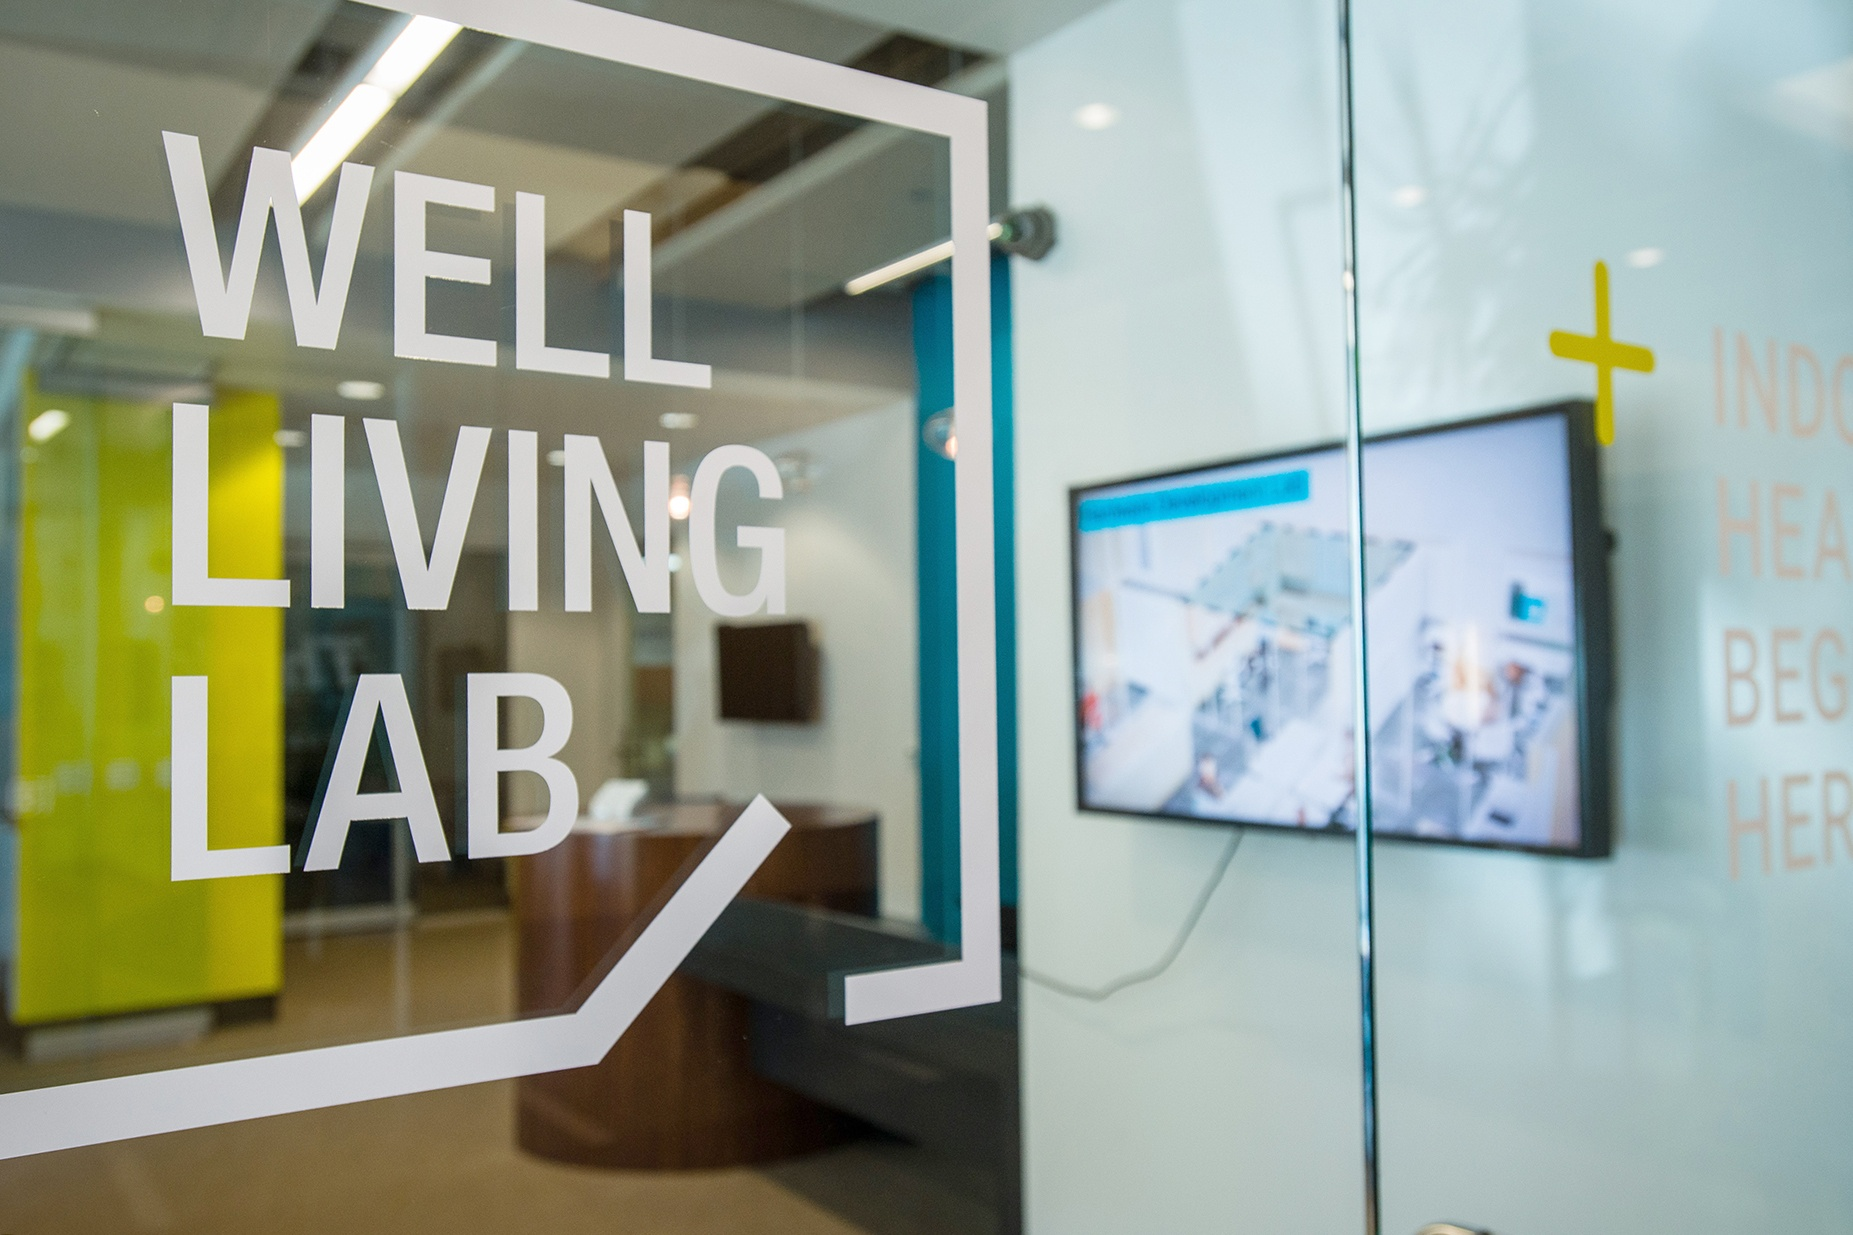 Well Living Lab.